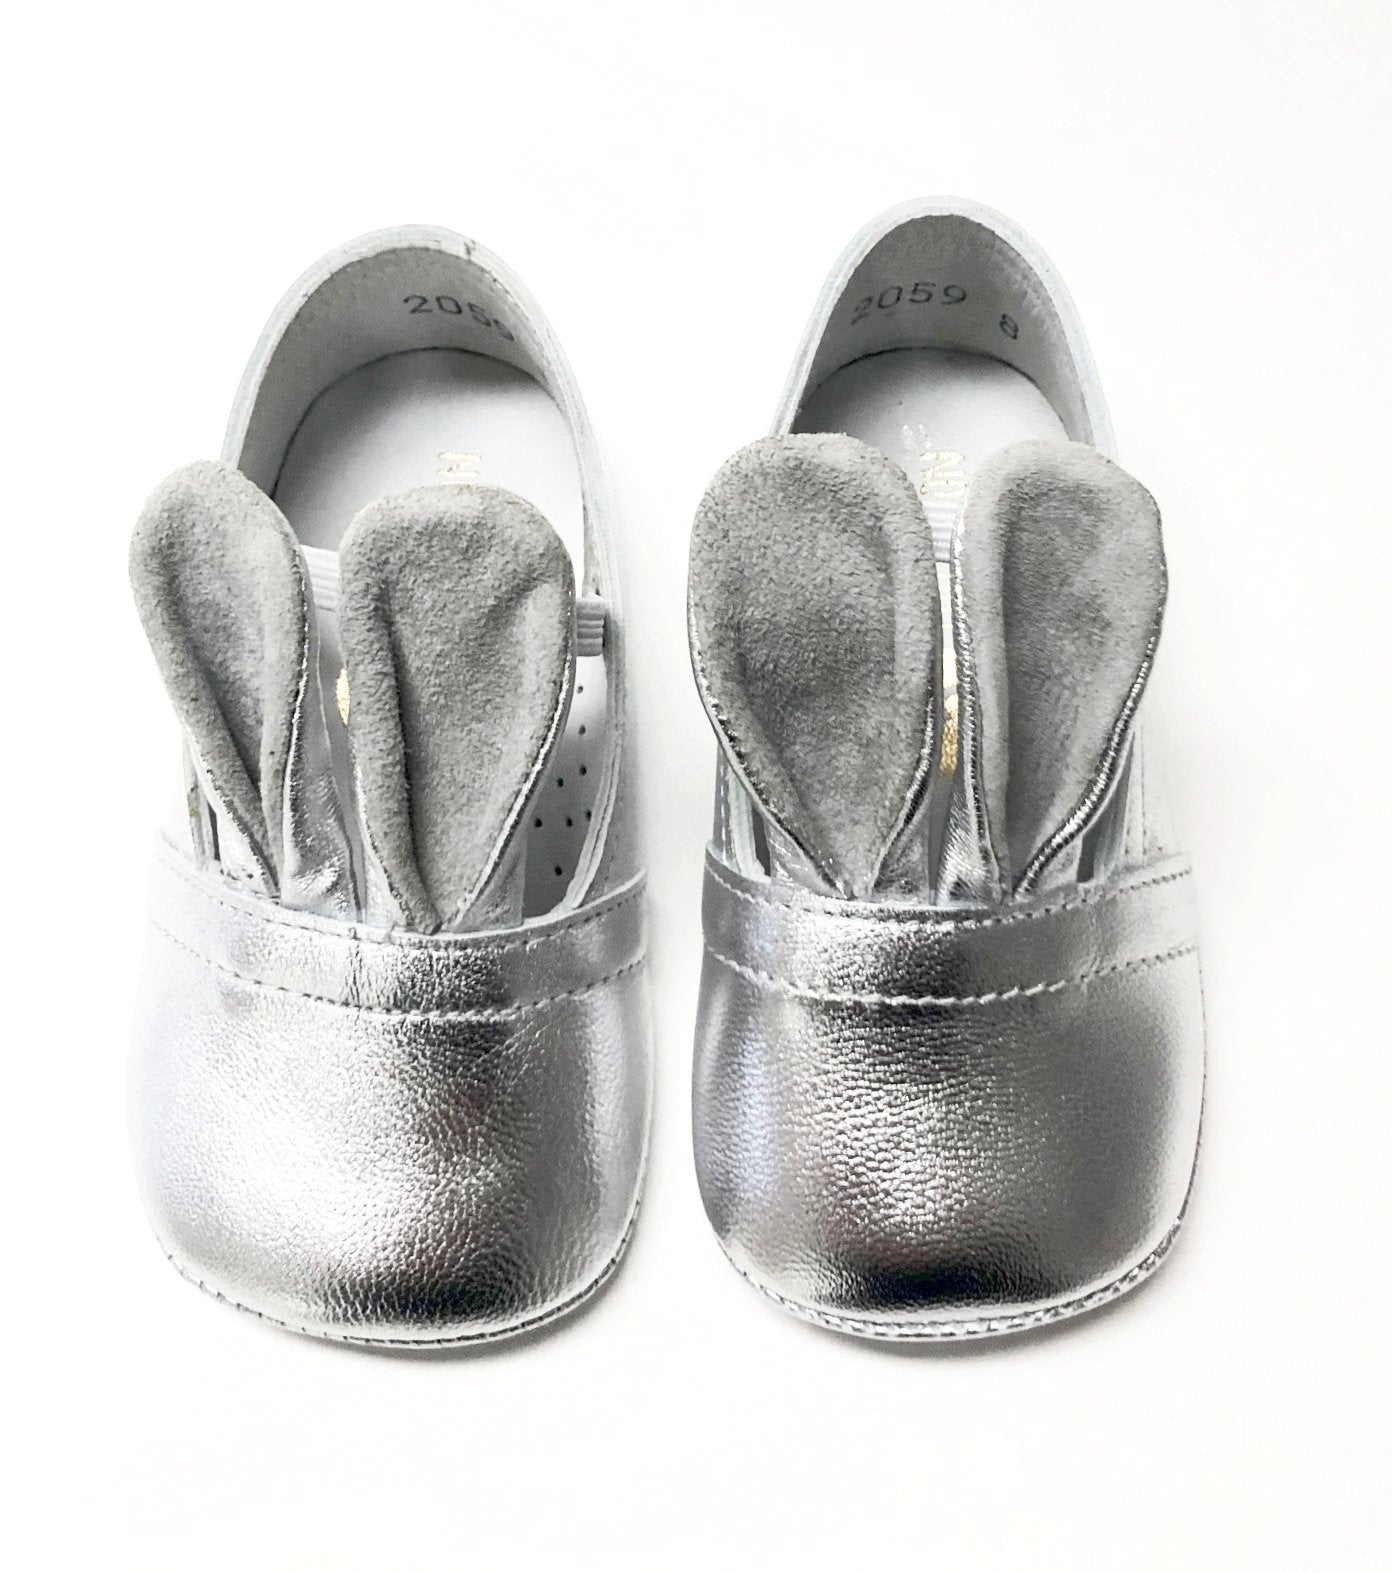 Lmdi Collection Silver Leather Baby Bunny Shoe Tassel Children Shoes